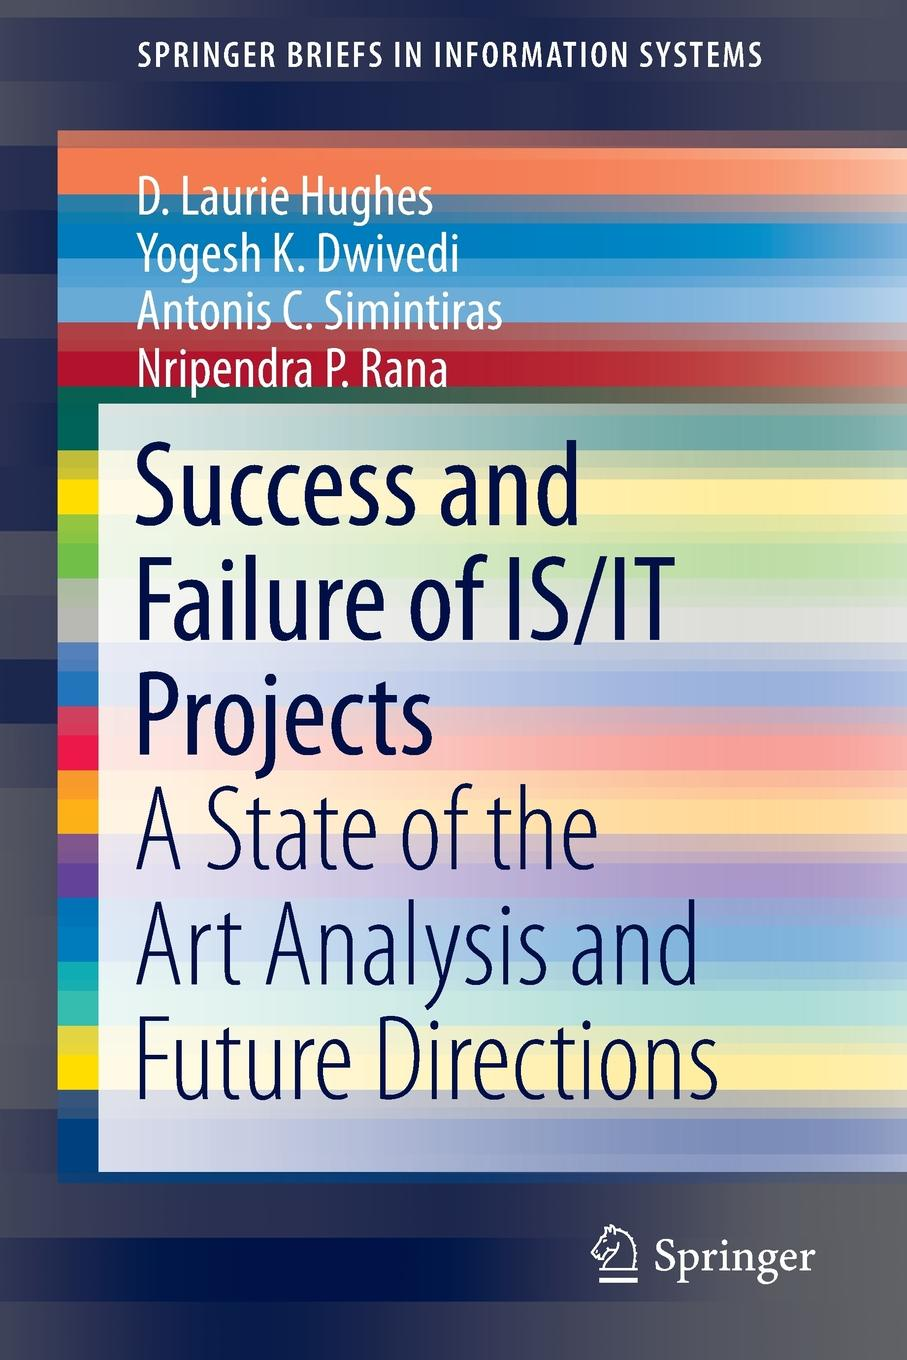 цена D. Laurie Hughes, Yogesh K. Dwivedi, Antonis C. Simintiras Success and Failure of IS/IT Projects. A State of the Art Analysis and Future Directions онлайн в 2017 году